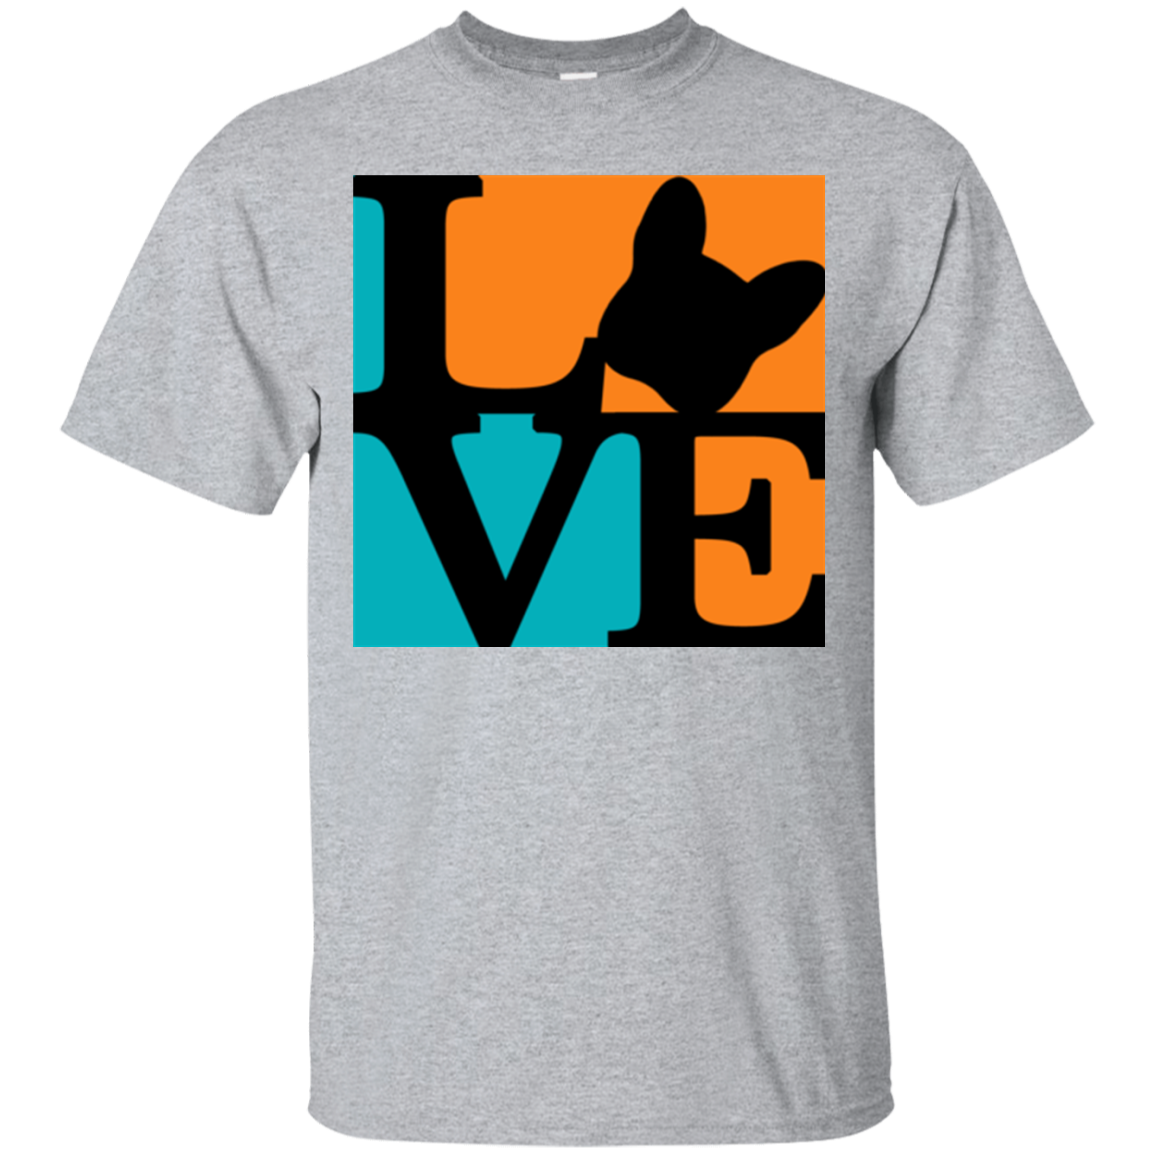 Frenchie Love T-Shirt - Men's T-Shirts I Love Frenchie Bulldogs